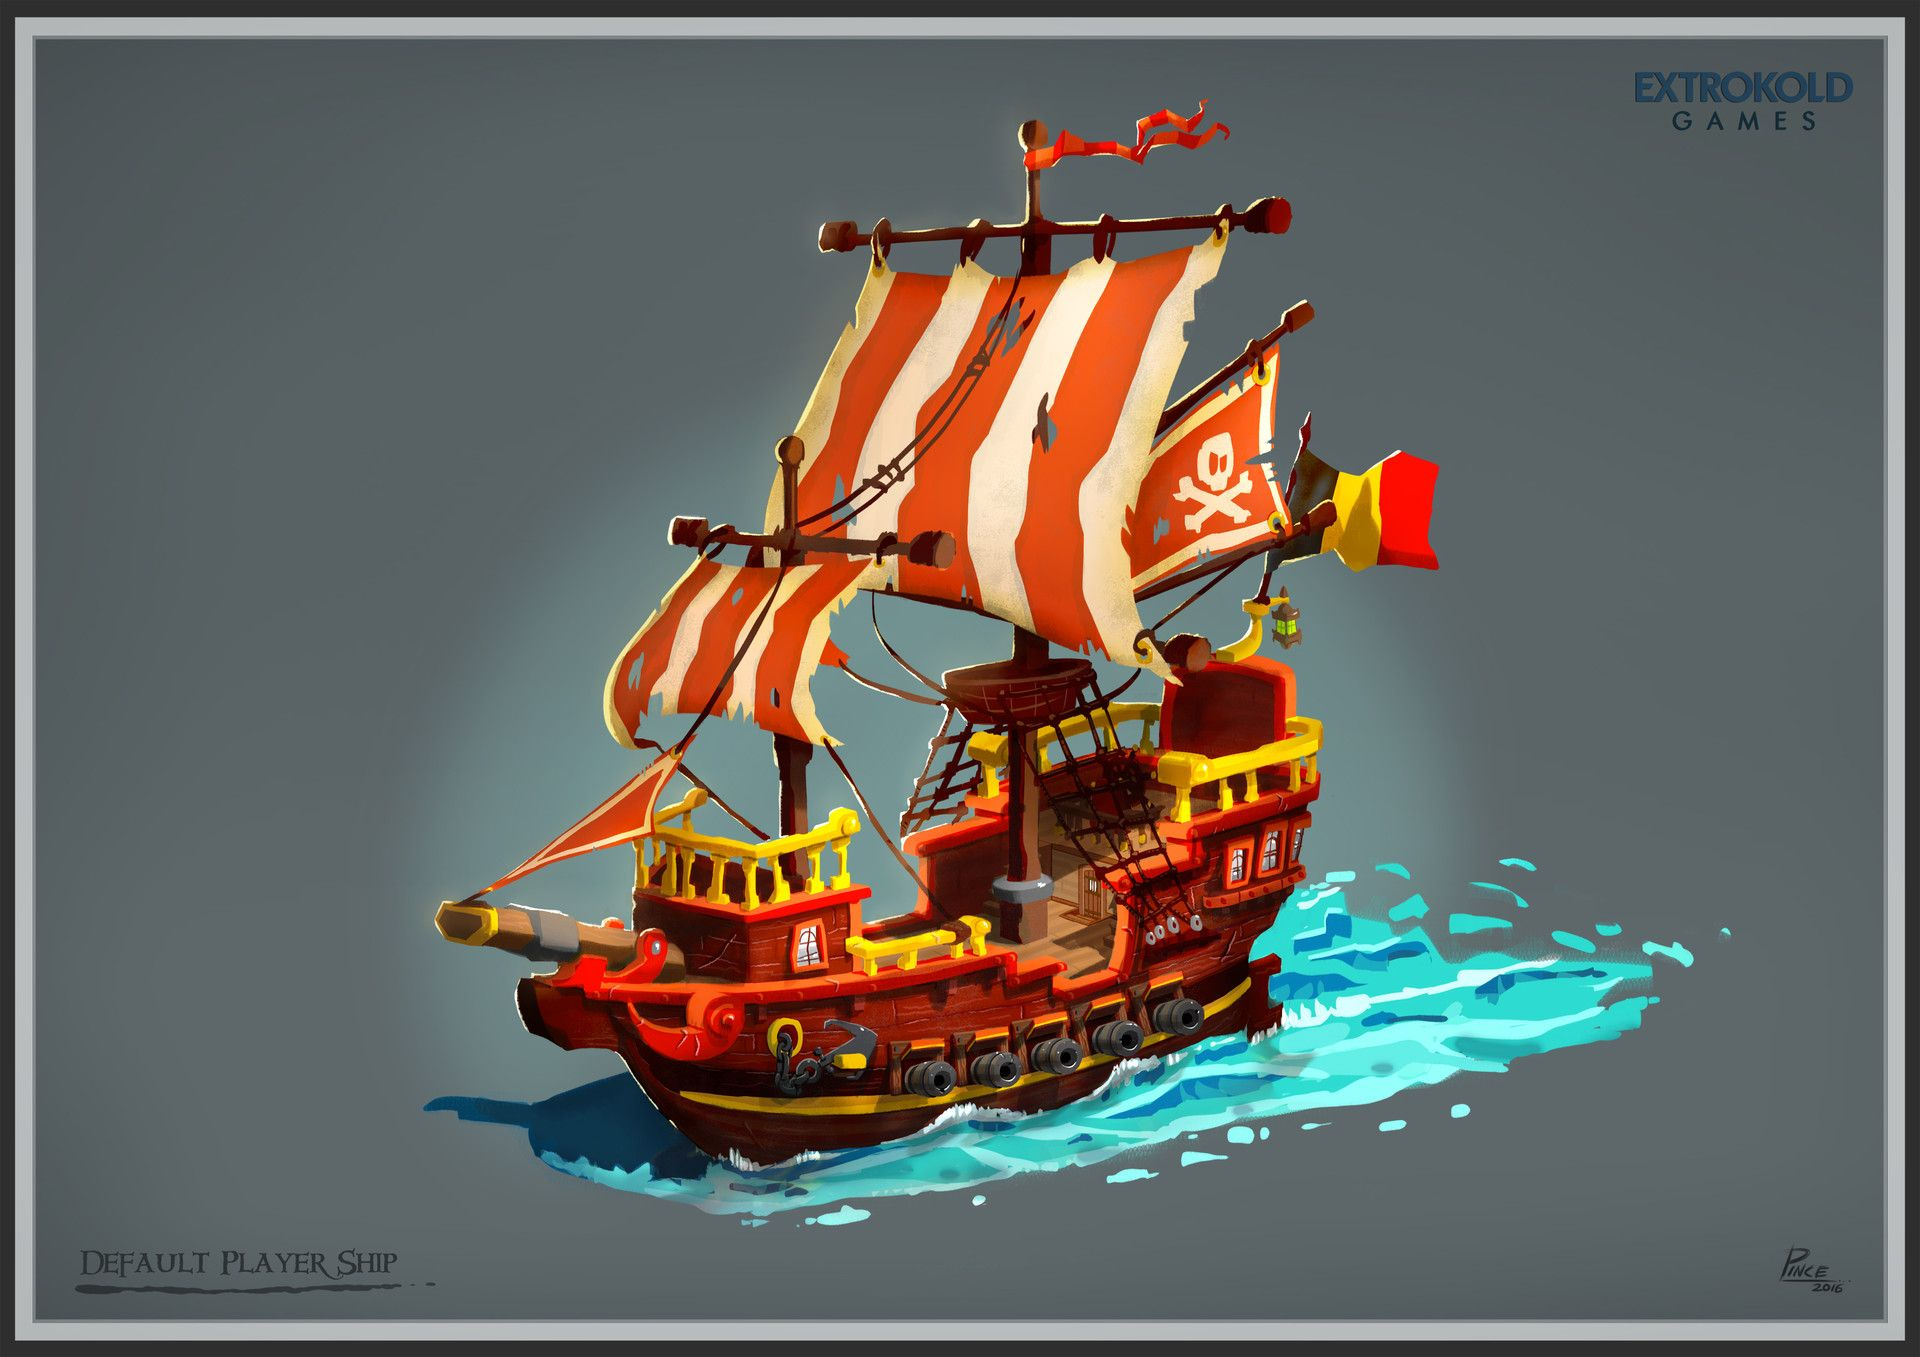 Unearned Bounty Pirate Ship Designs Lineup Richard Pince Anime Pirate Concept Art Pirate Ship